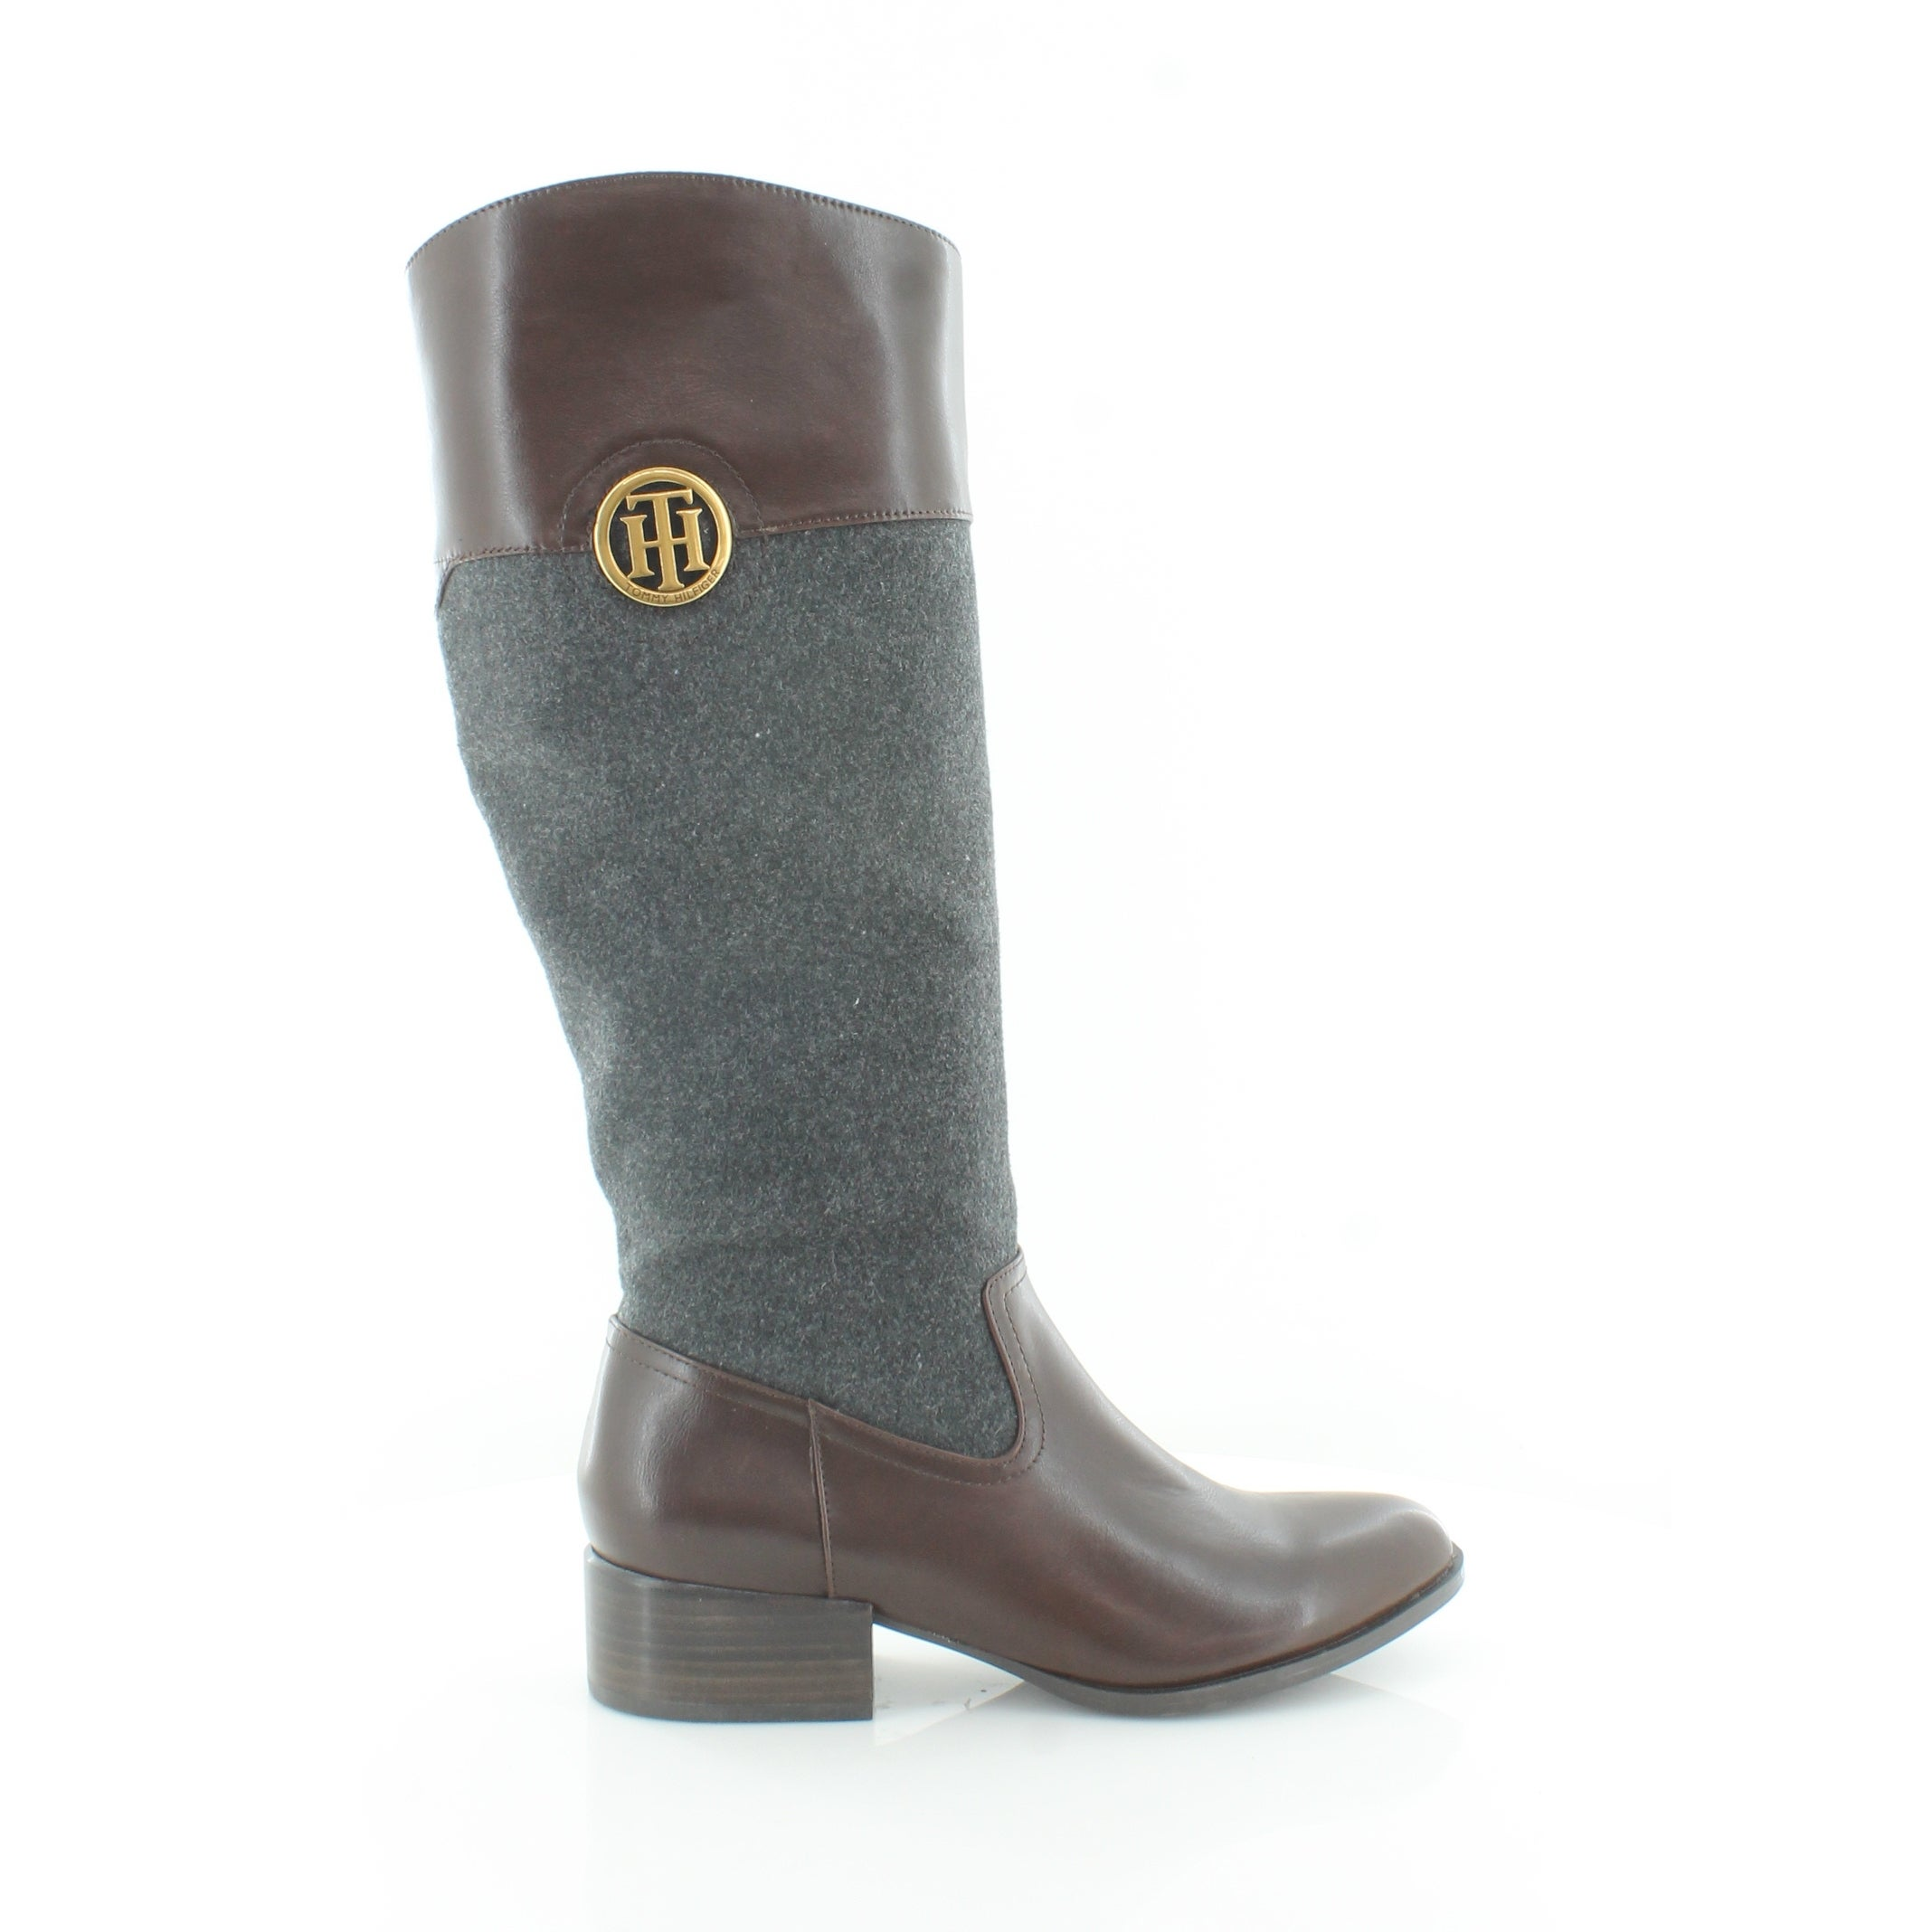 6bee931c0 Shop Tommy Hilfiger Madelen Women s Boots Dark Gray - Free Shipping Today -  Overstock - 26290732